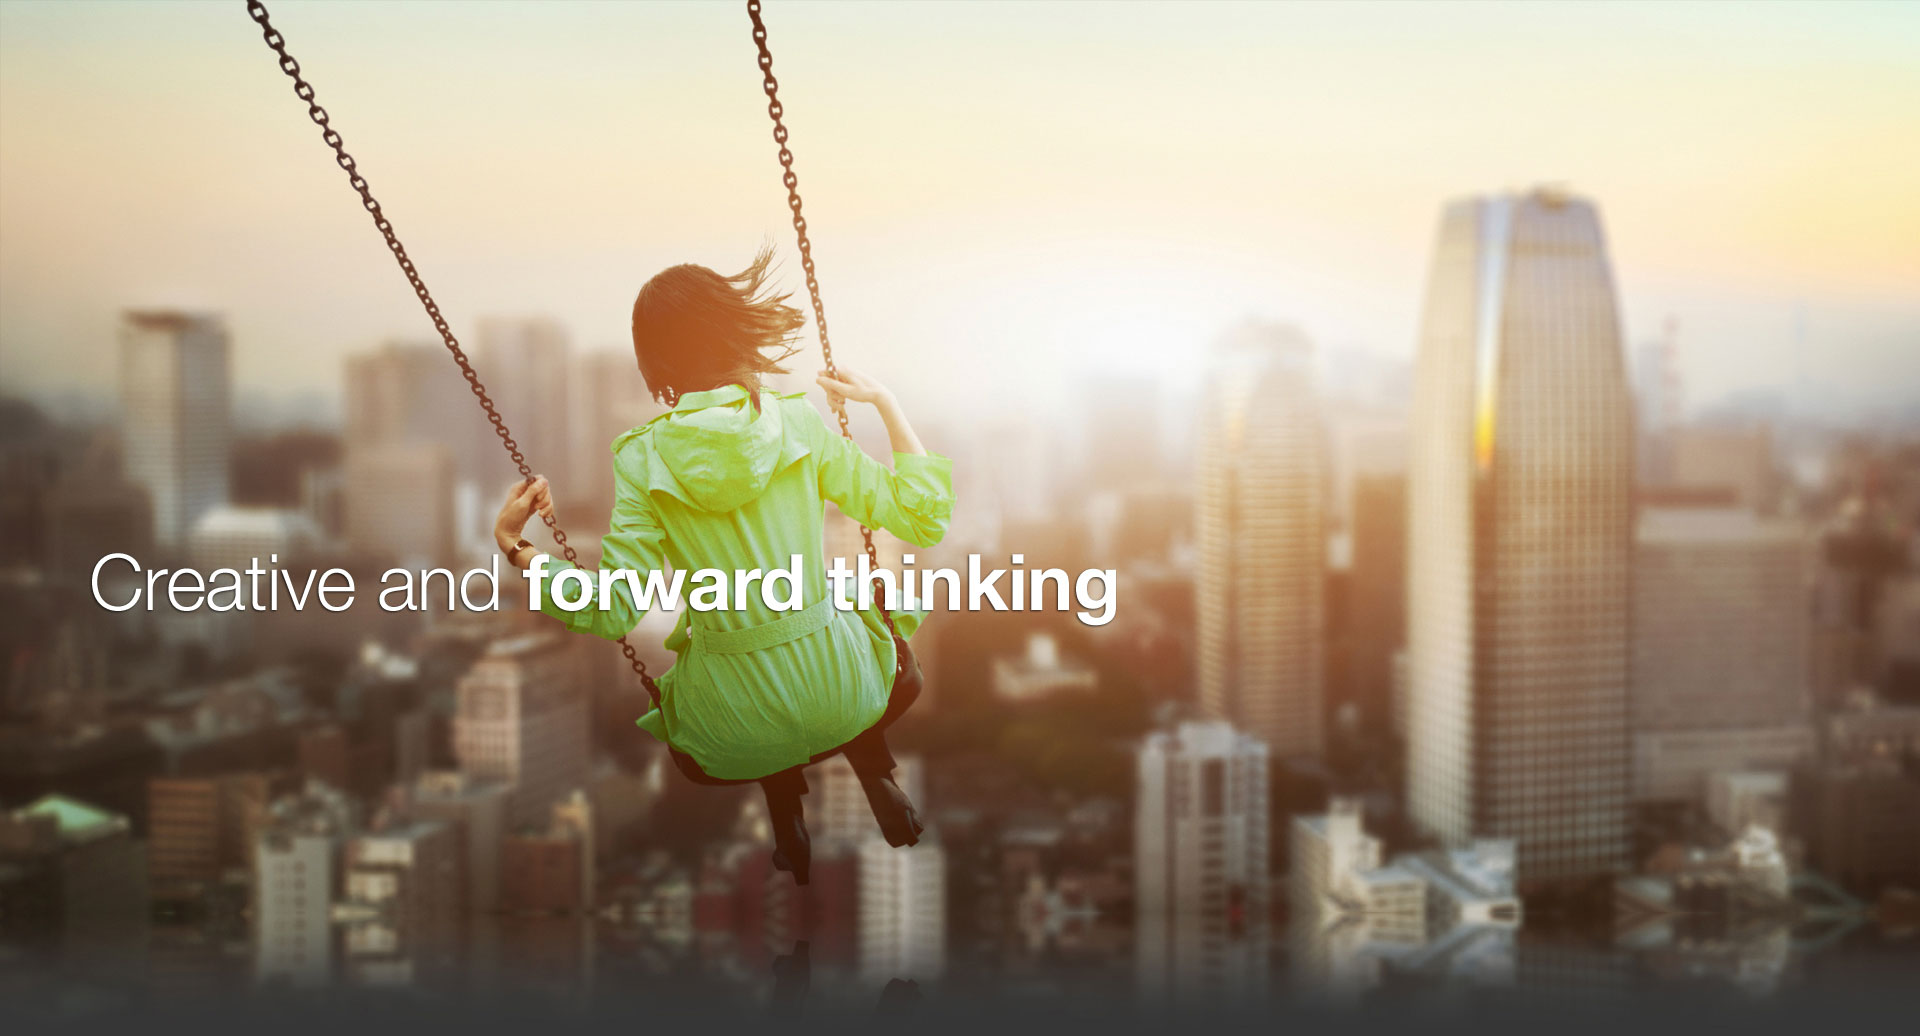 Creative_and_forward_thinking@2x